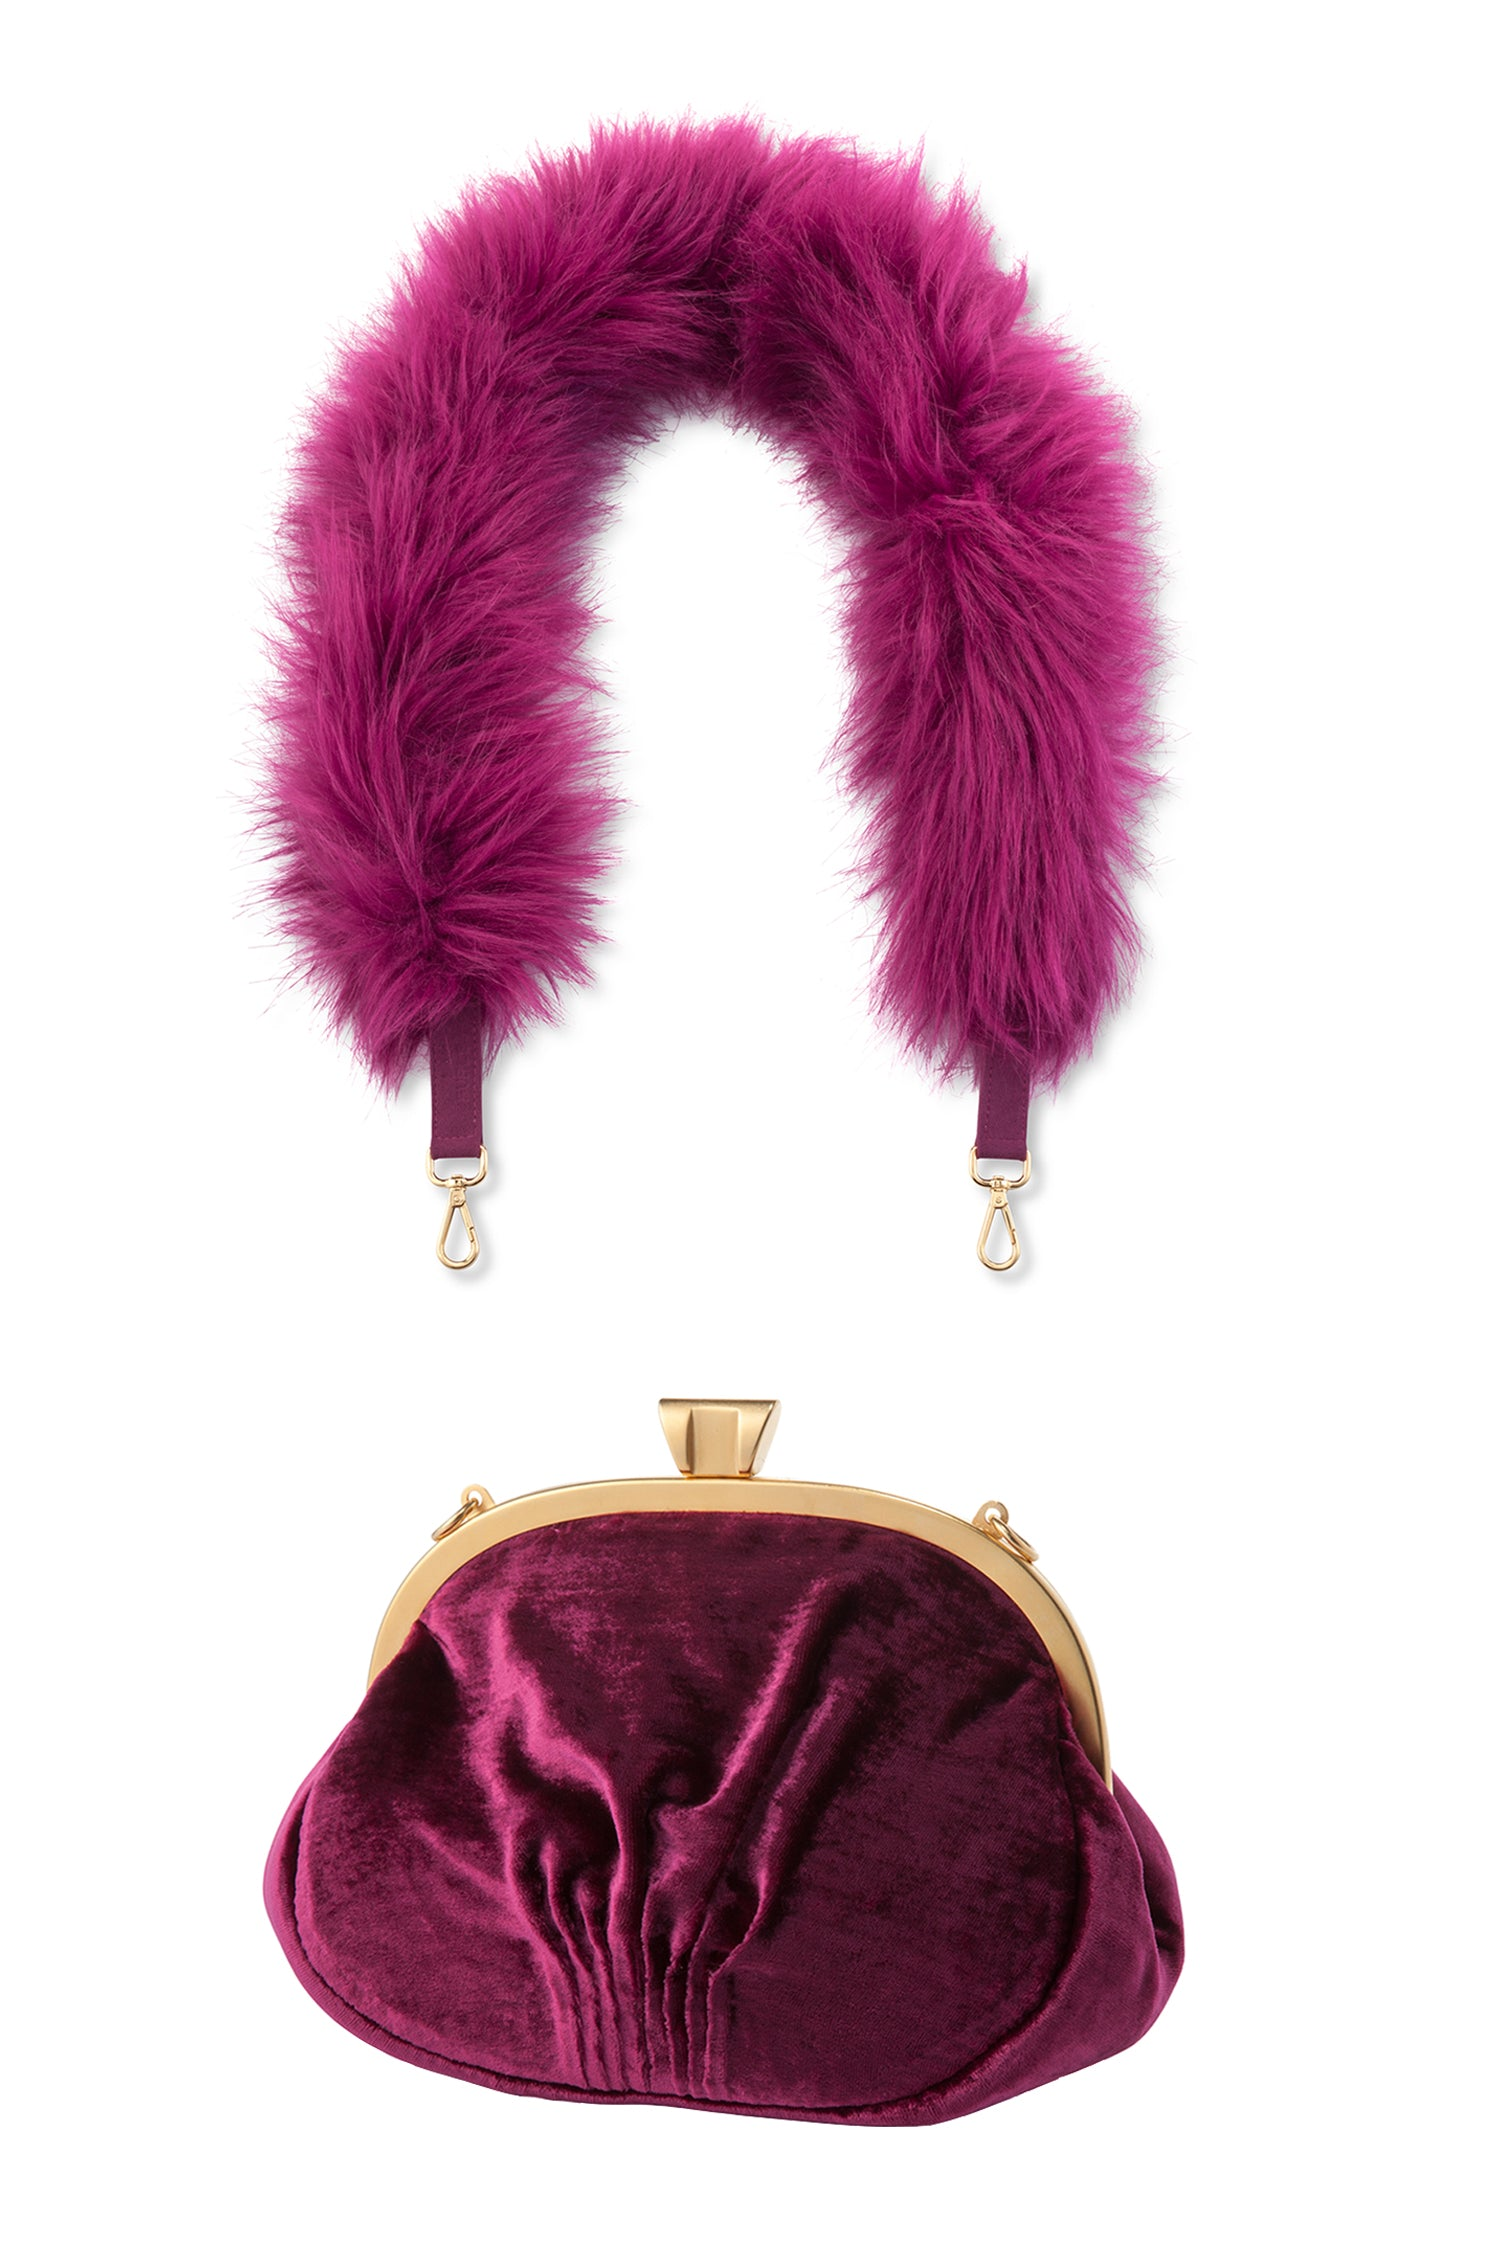 A Packshot Of Marei1998's Forget Me Not Velvet Purse In Raspberry Color. Made From Lustrous Velvet And Topped With Gold Plated Brass Clasp For Smooth Closure. The Puffy Silhouette In Bold Raspberry Color Is Accentuated By A Lush Faux Fur Strap, Creating A Contemporary Vintage Look. Front View.